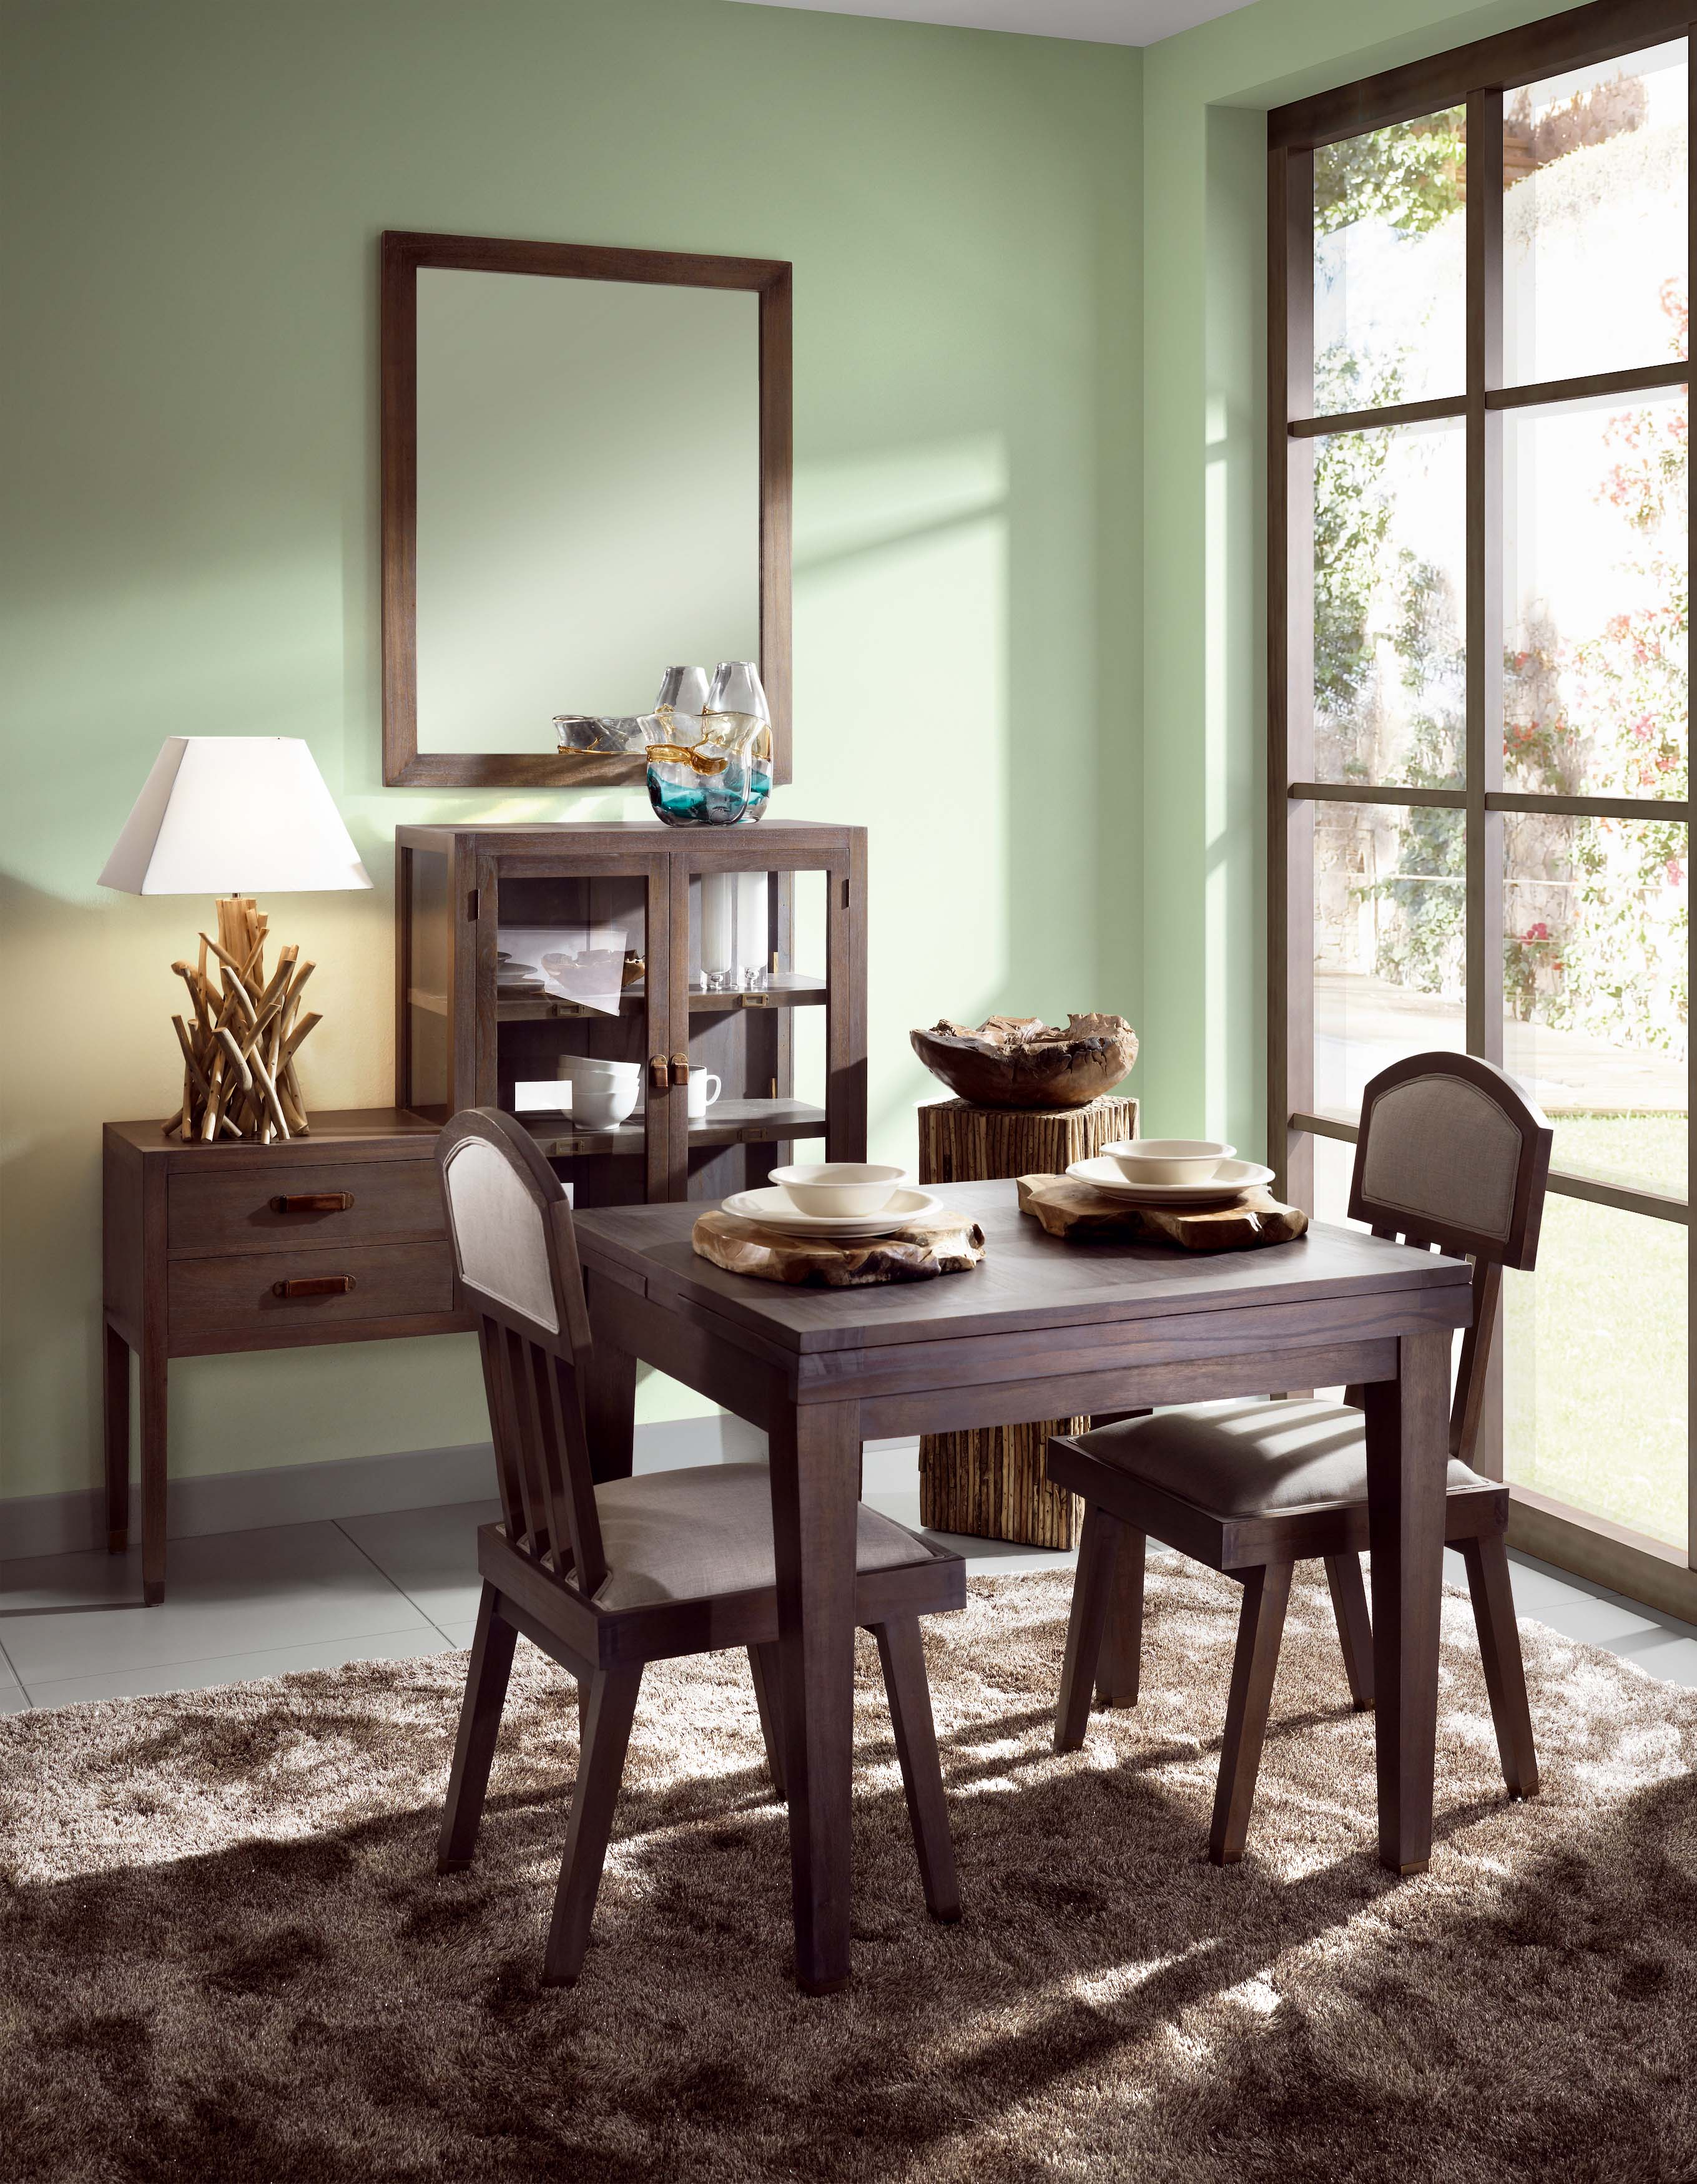 petite console d 39 entr e en bois gris 3 tiroirs. Black Bedroom Furniture Sets. Home Design Ideas